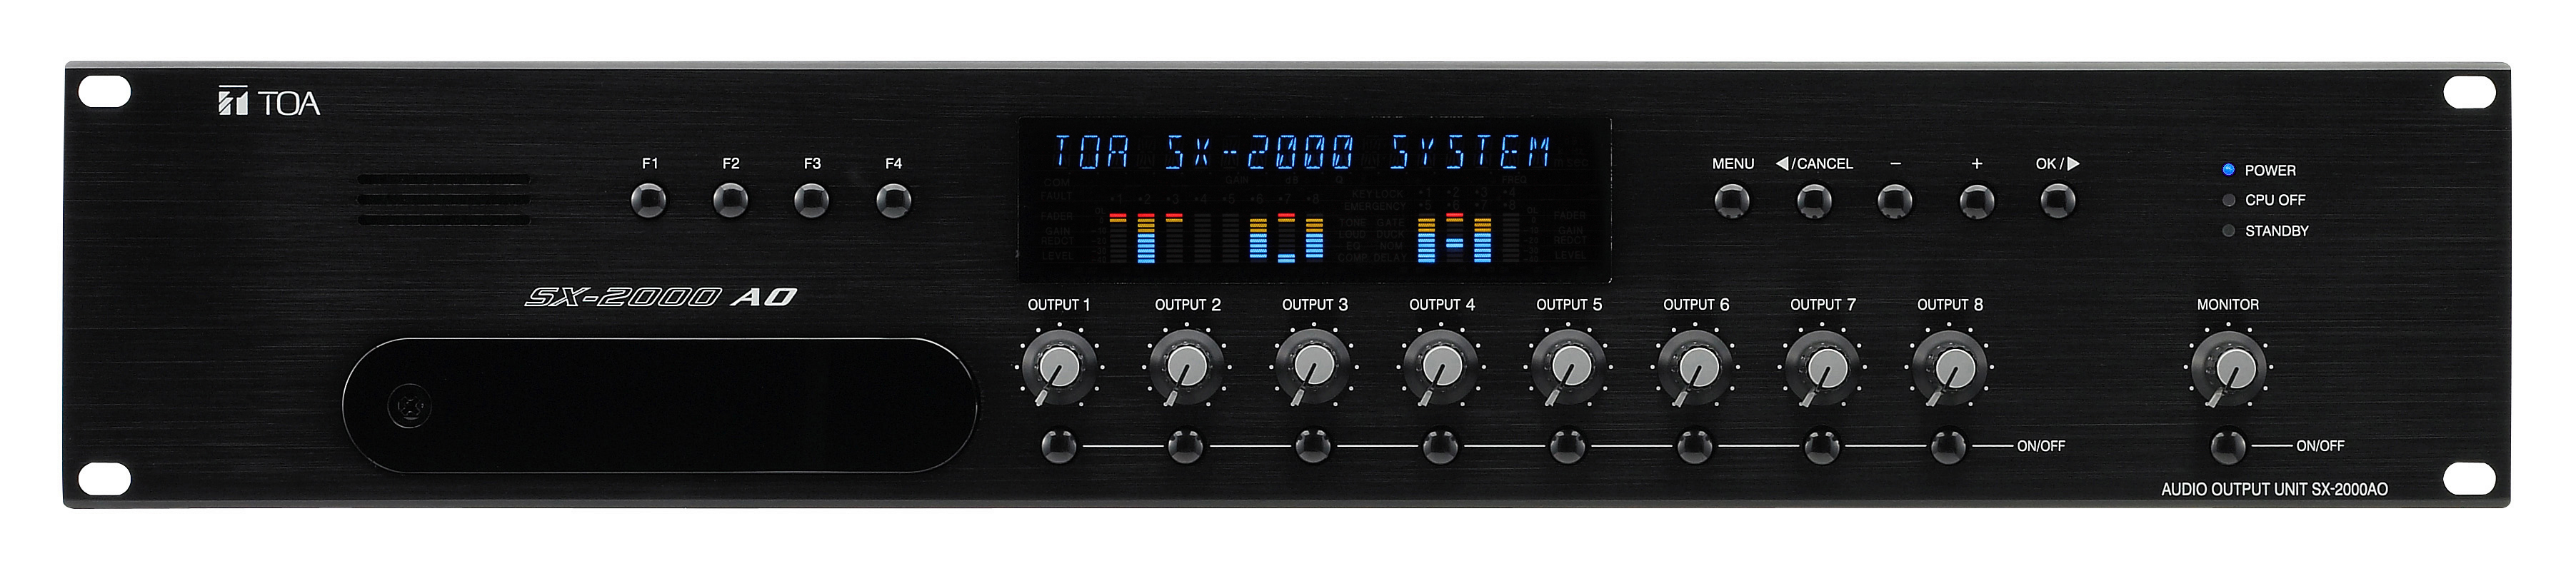 SX-2000AO Audio Output Unit